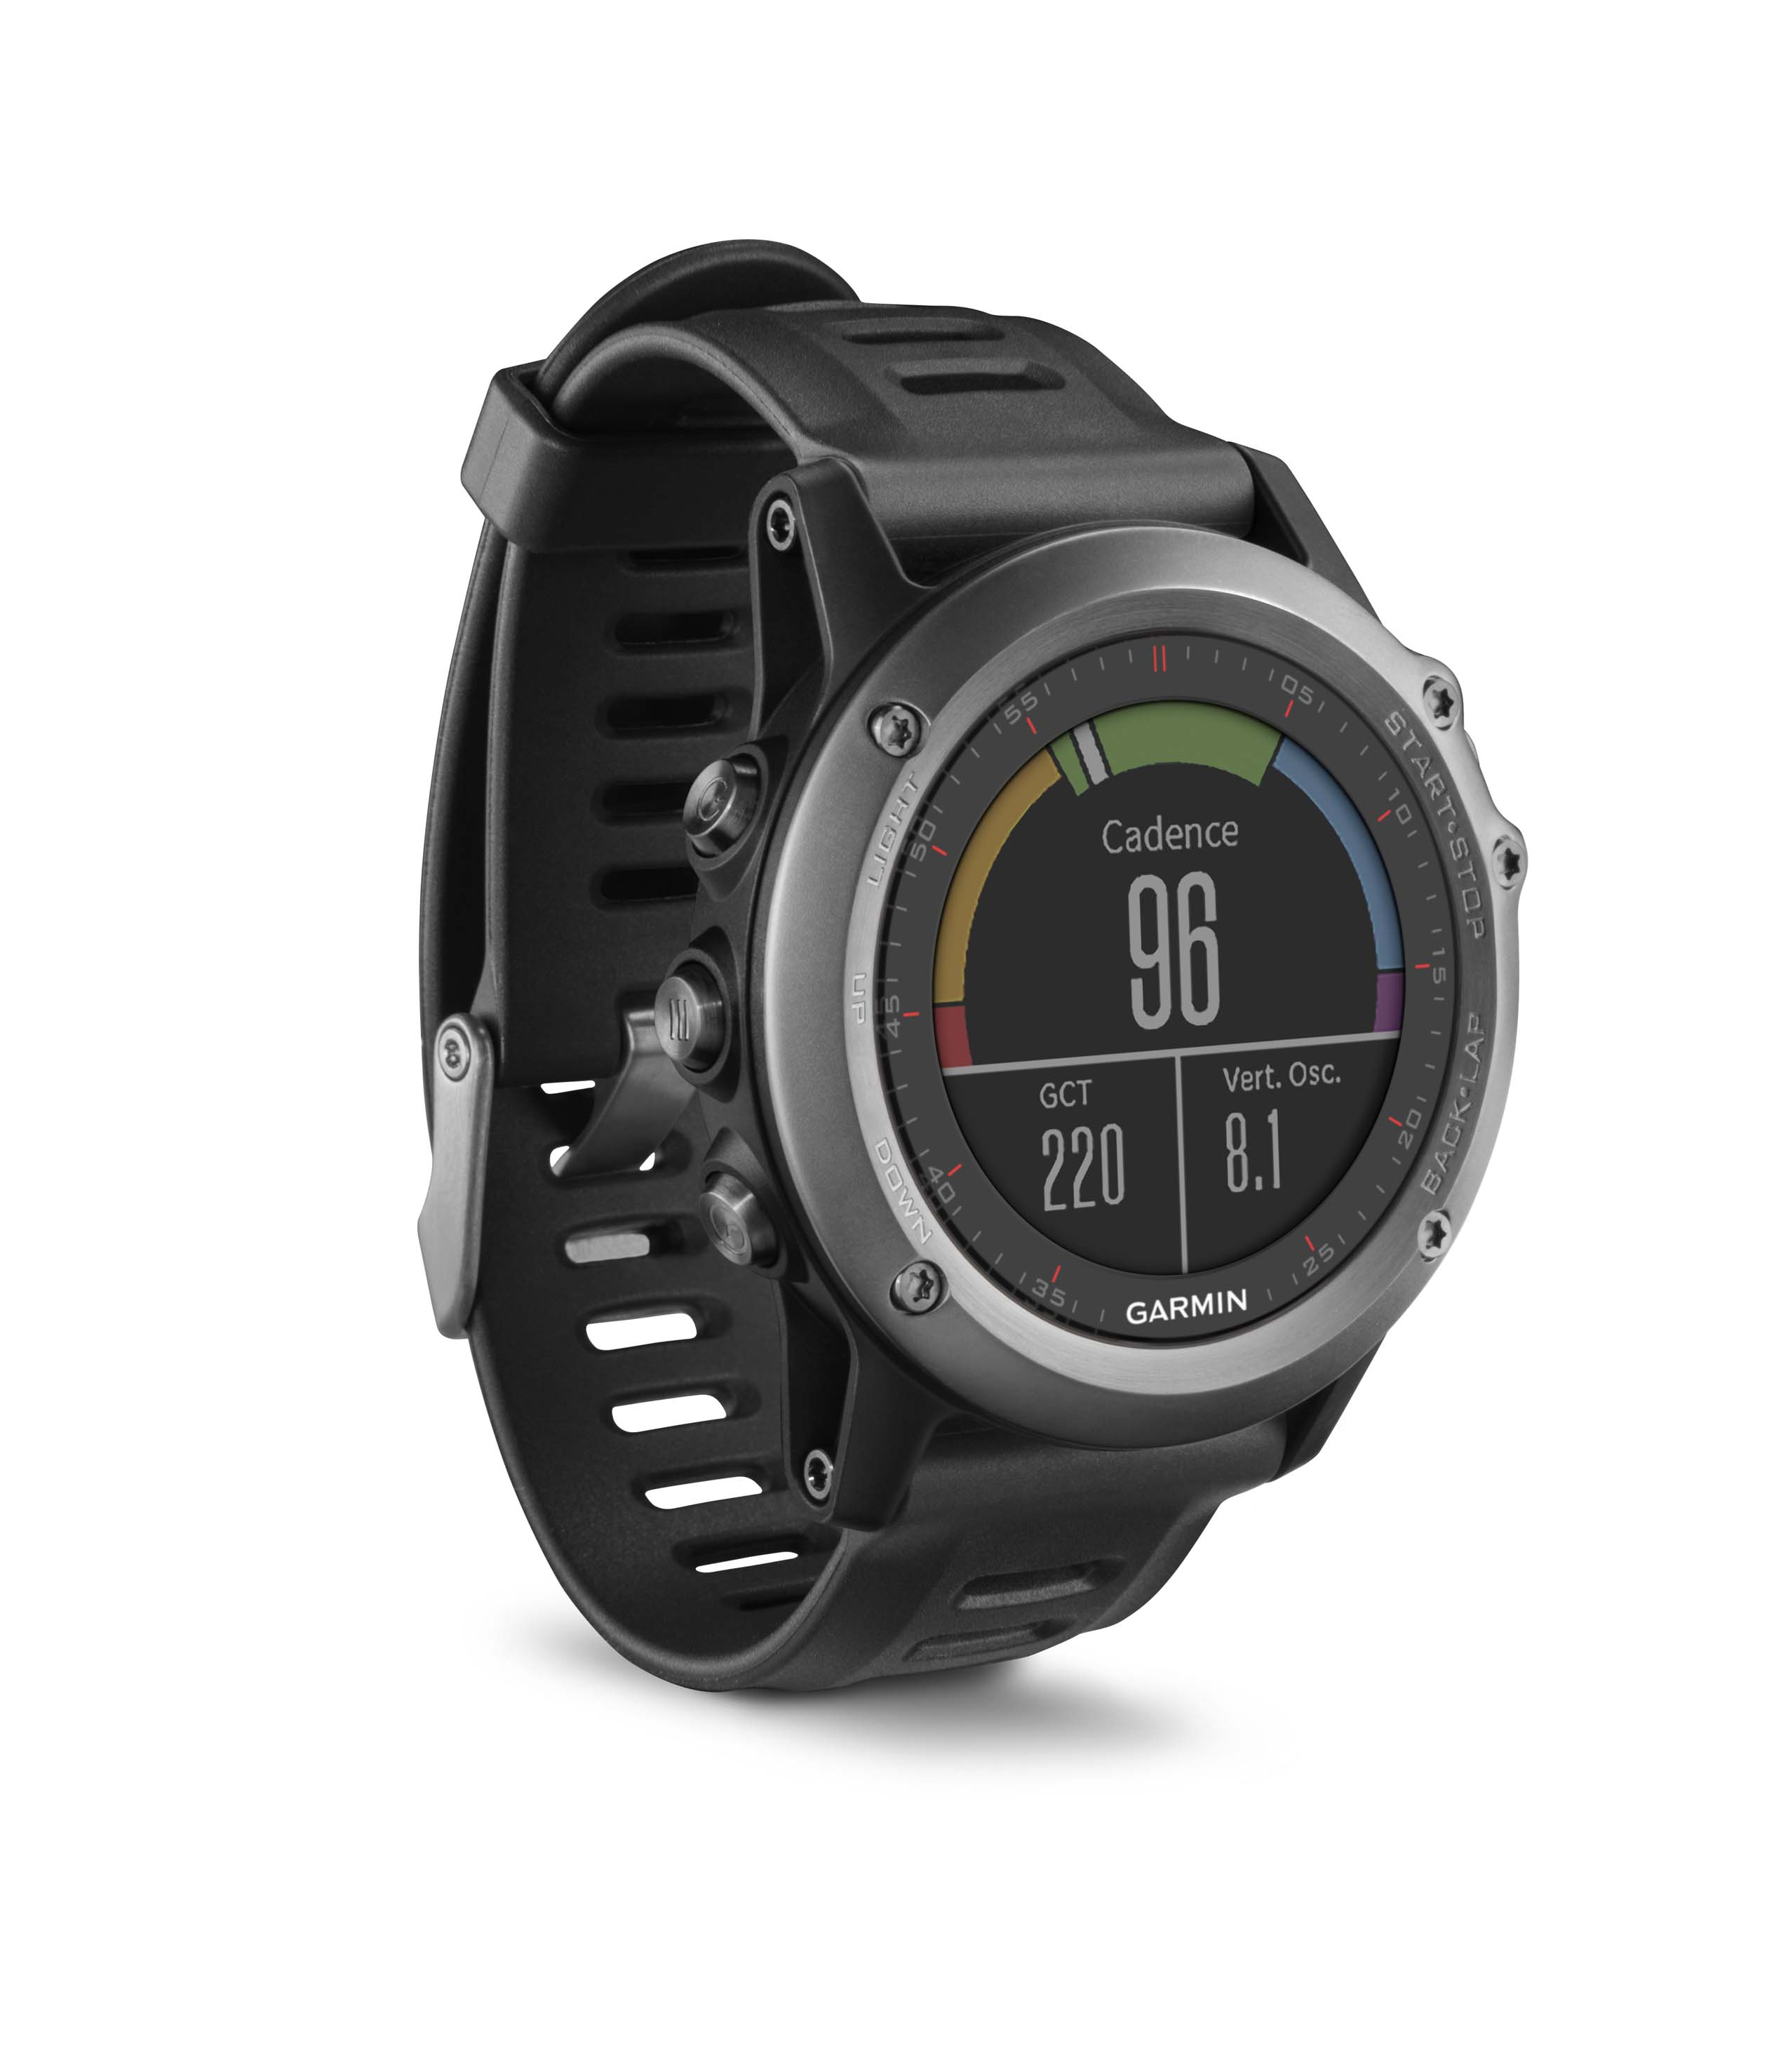 GARMIN_Fenix3_grey (13)